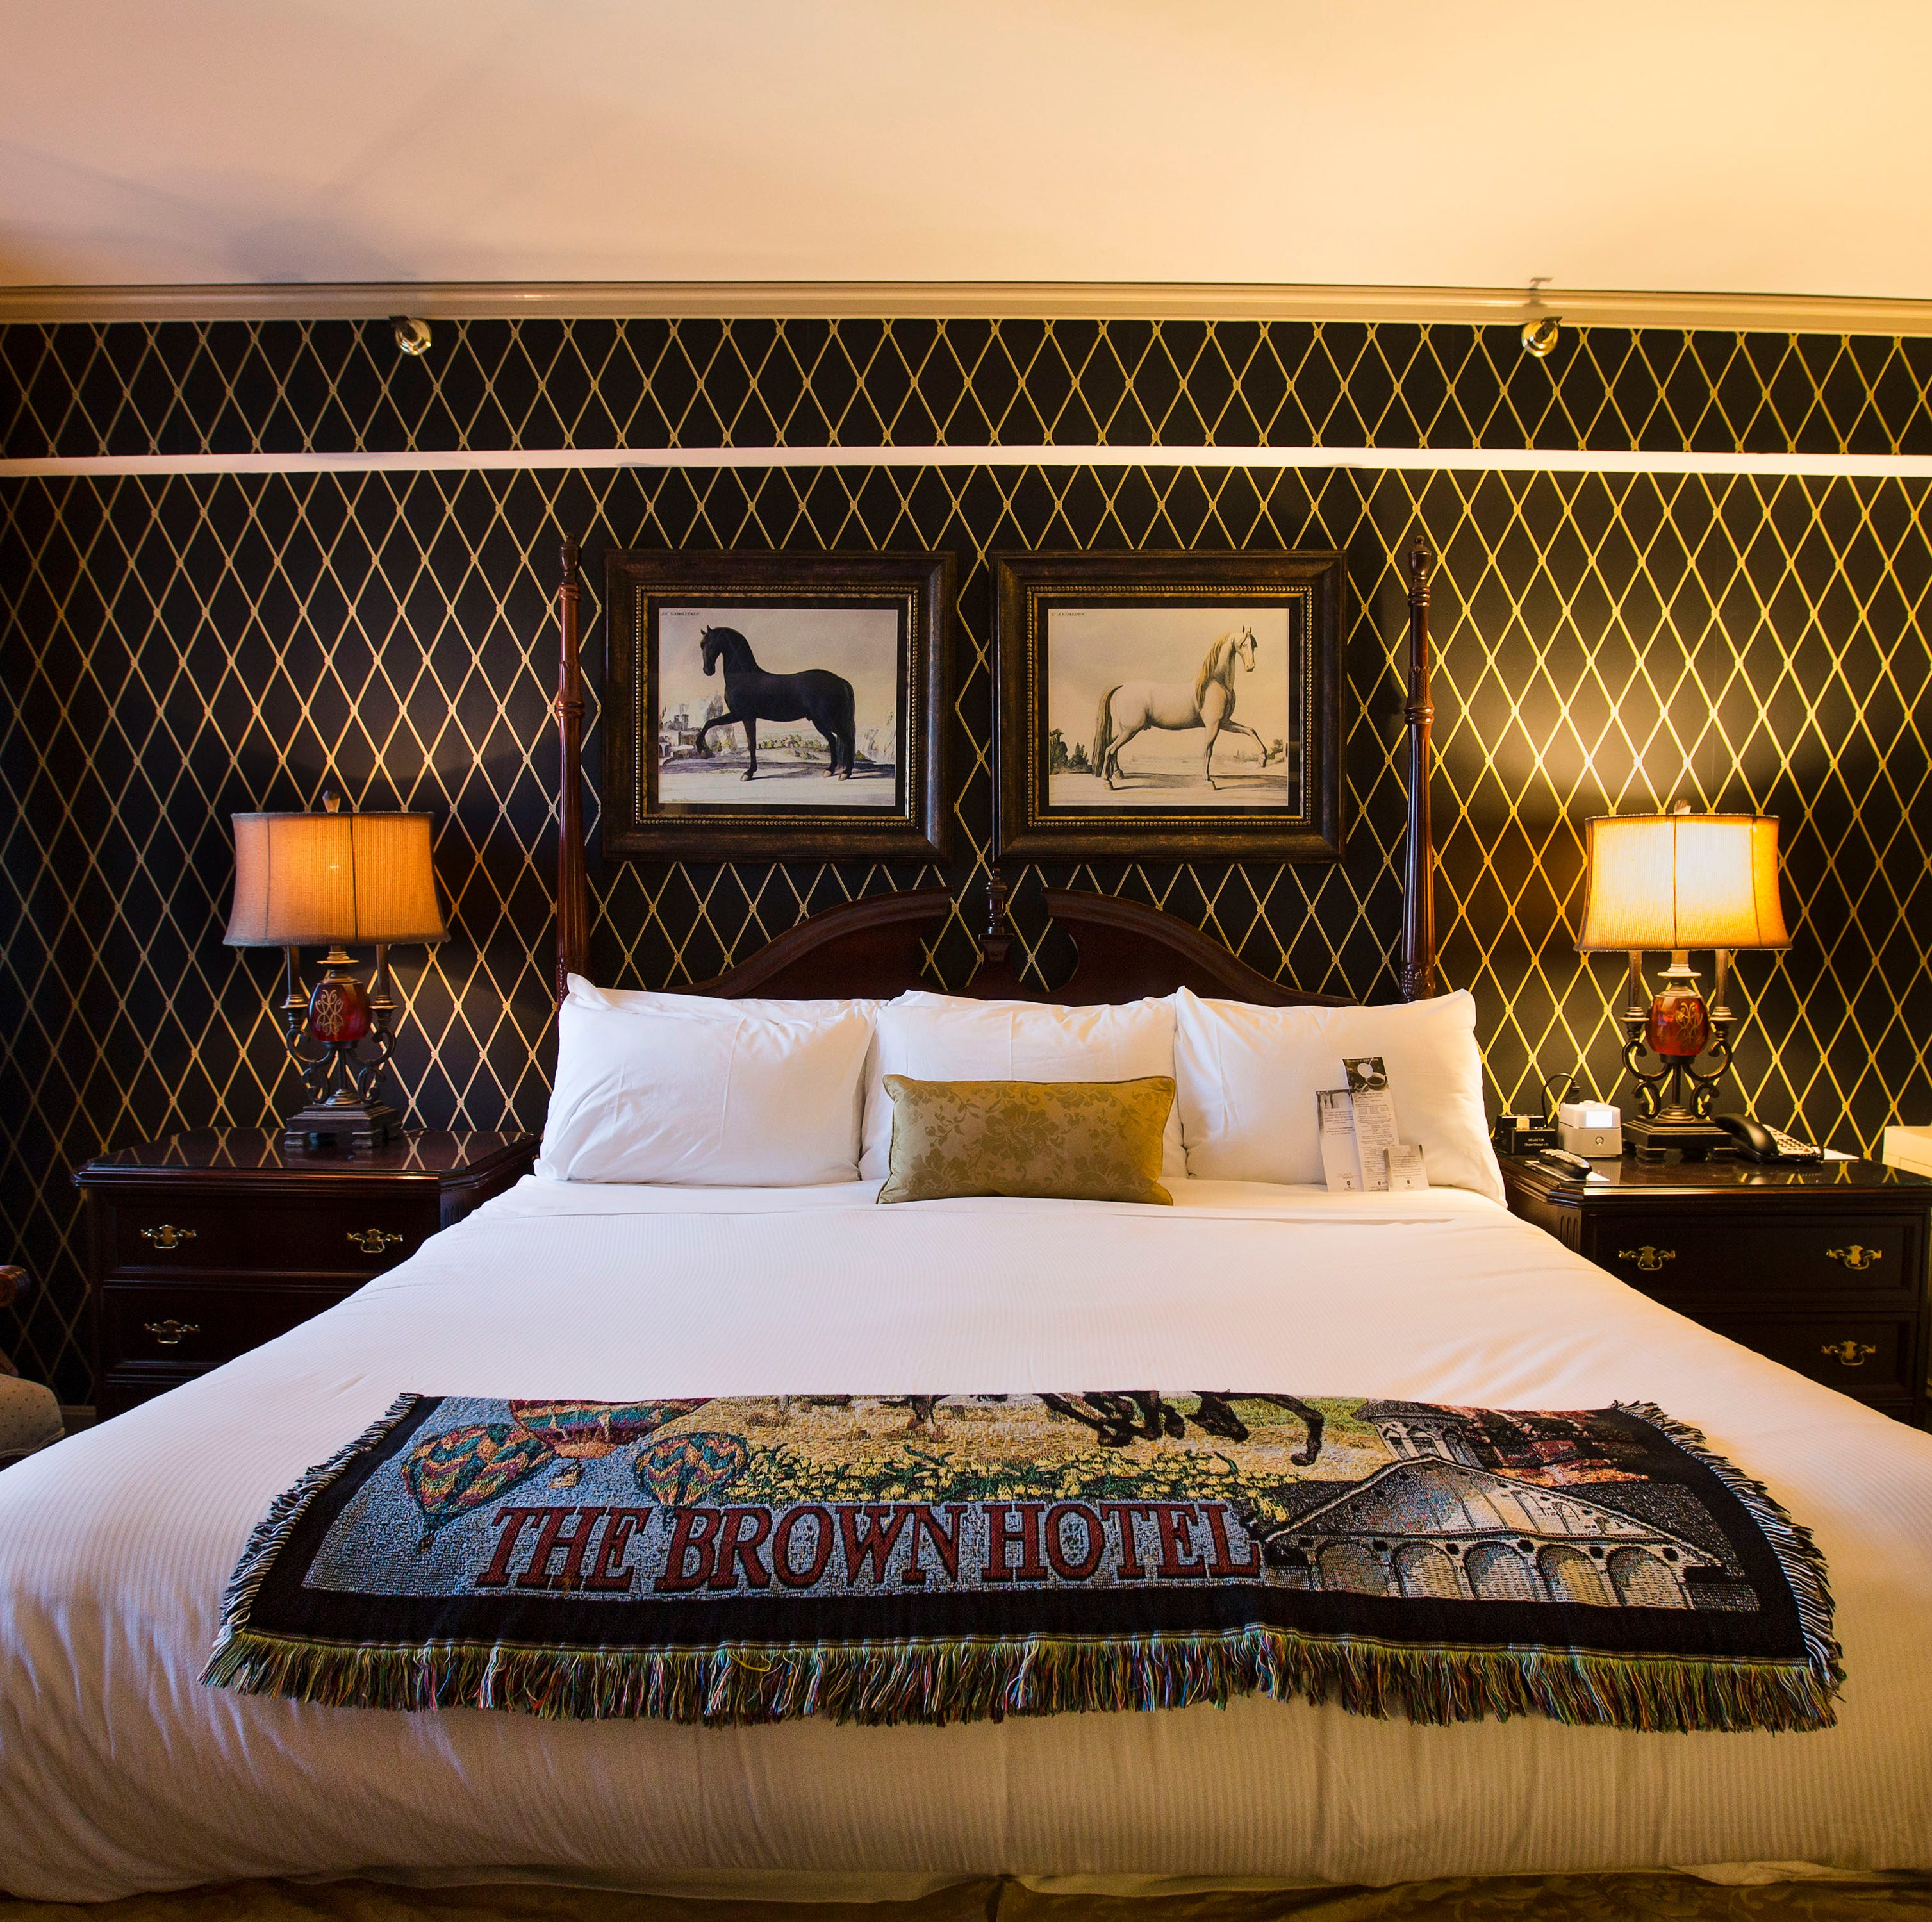 $10K a night for a hotel room in Louisville? It must be Kentucky Derby time